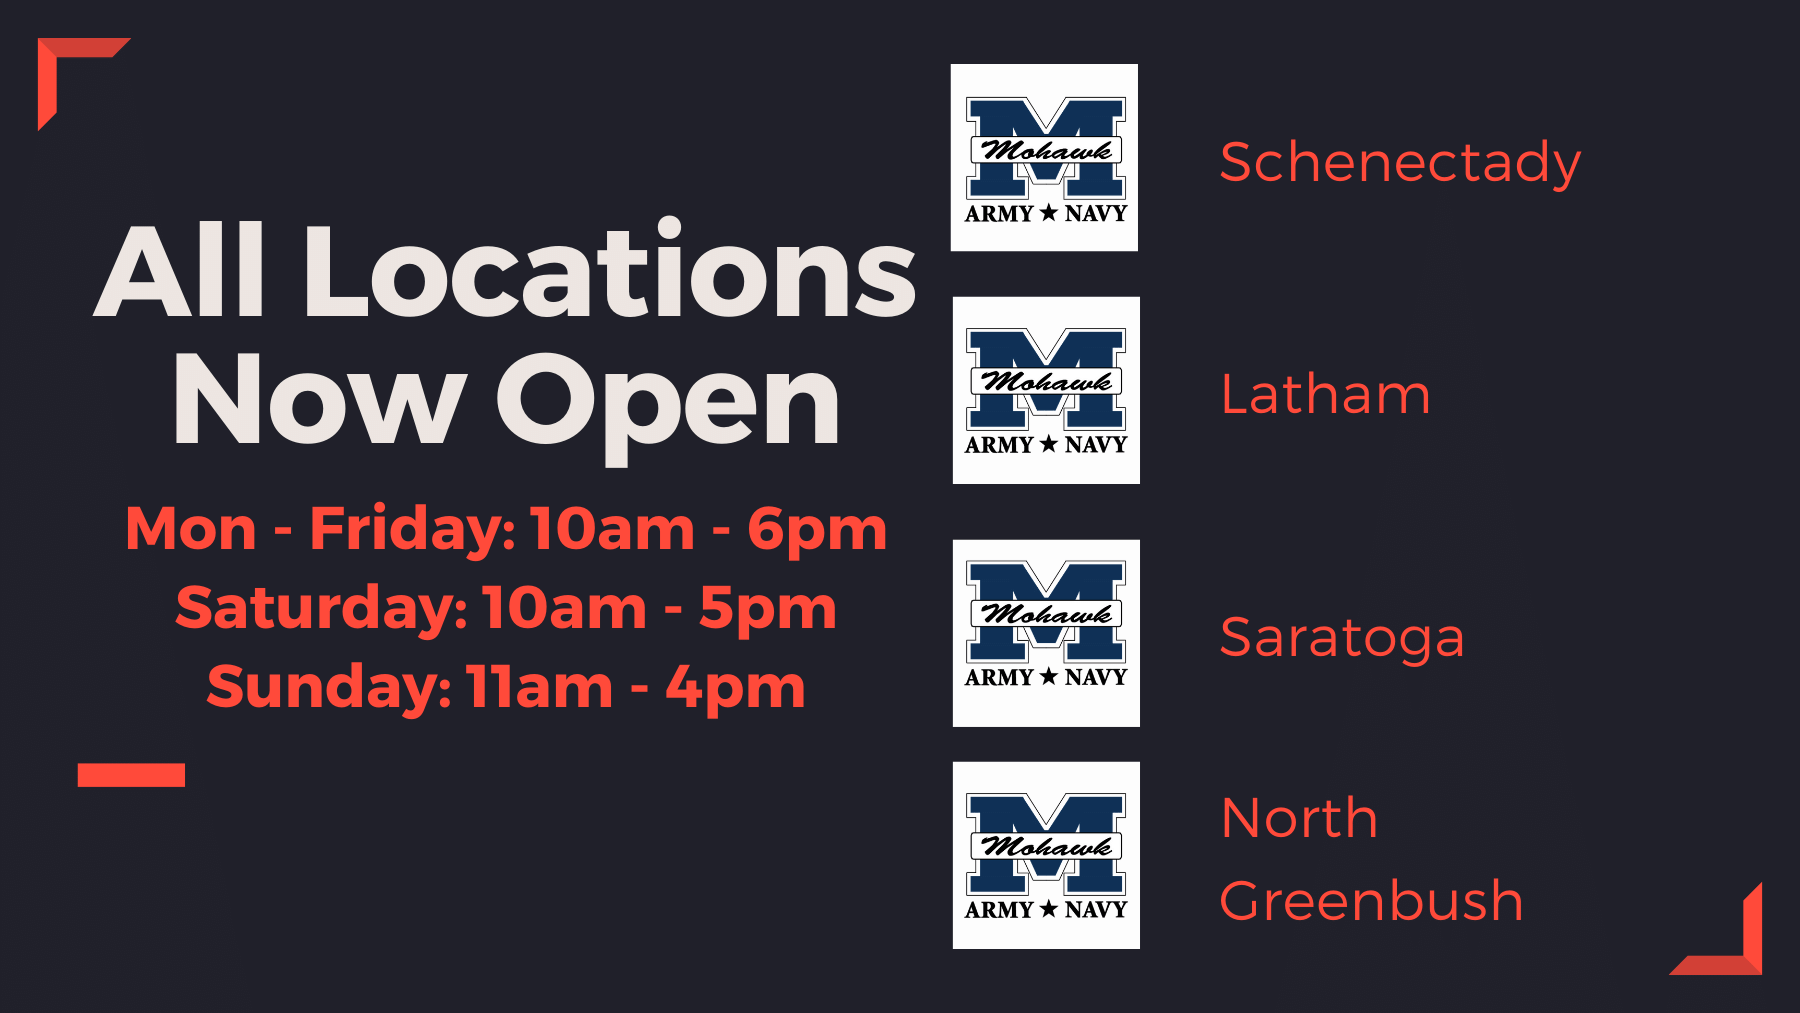 All stores now open, Monday - Friday 10am - 6pm, Saturday 10am - 5pm, Sunday 11am - 4pm